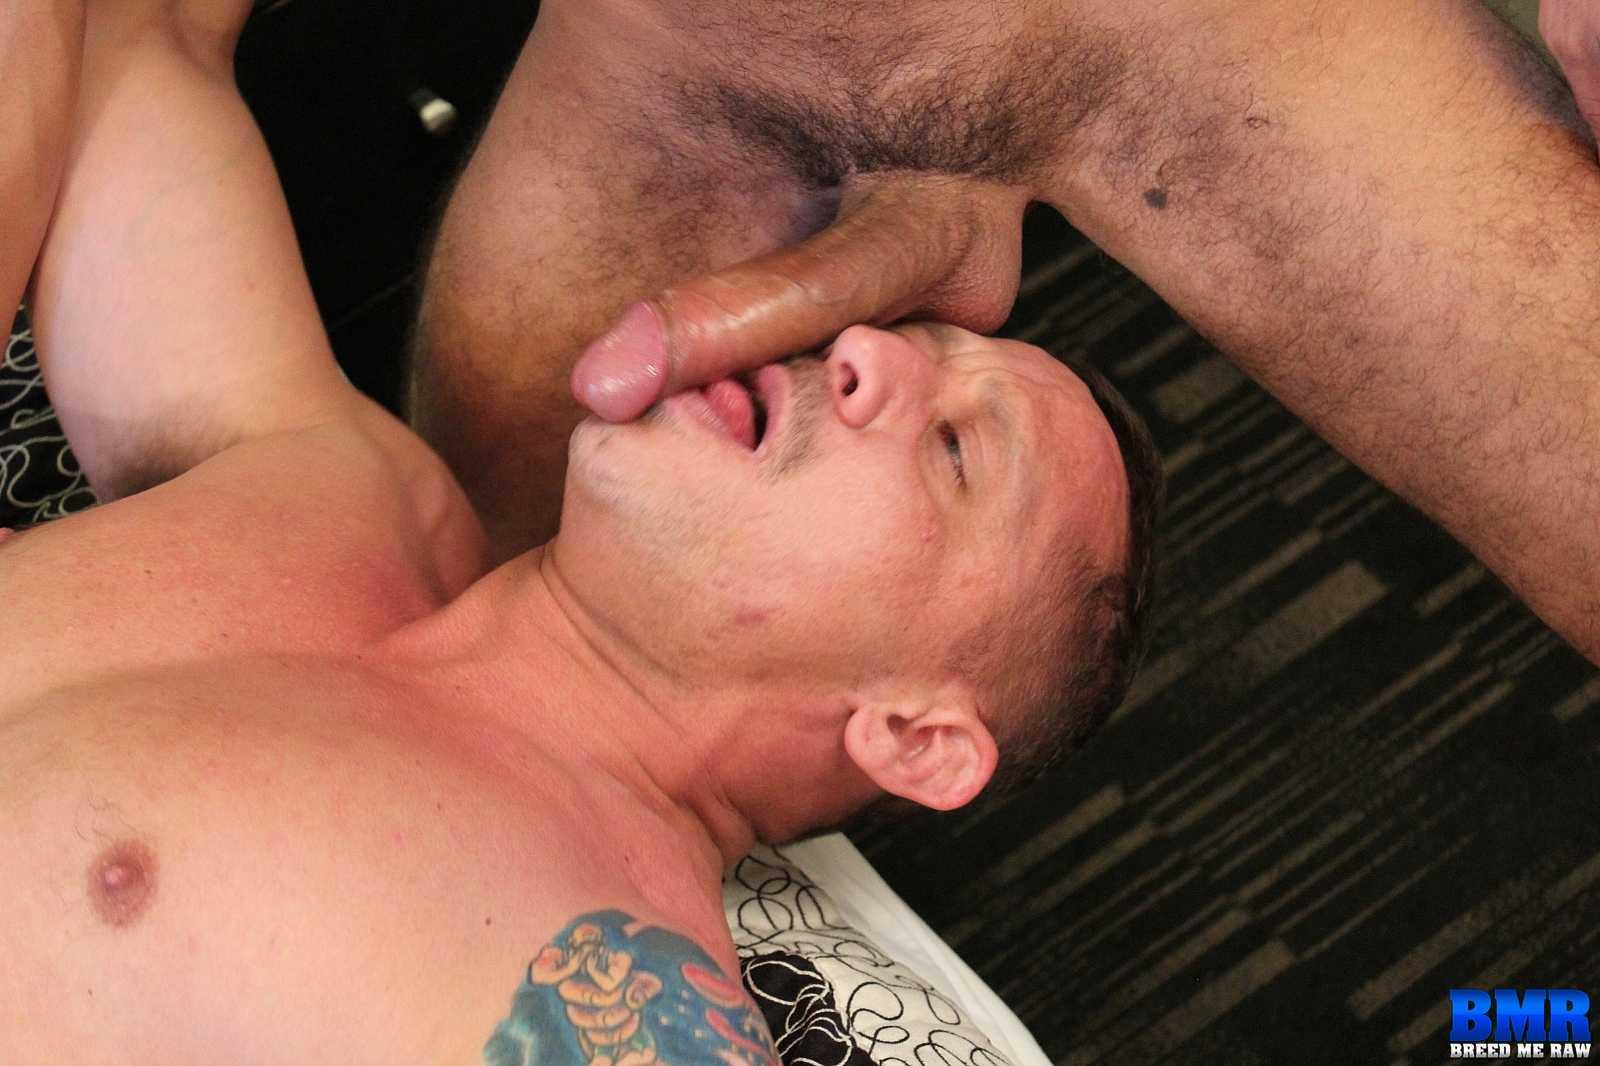 Breed-Me-Raw-Kyle-Savage-and-Sebastian-Rio-White-Daddy-Gets-Barebacked-By-Big-Uncut-Latino-Cock-Amateur-Gay-Porn-05 Jock Strap Daddy Takes A Big Latino Uncut Cock Bareback And Raw